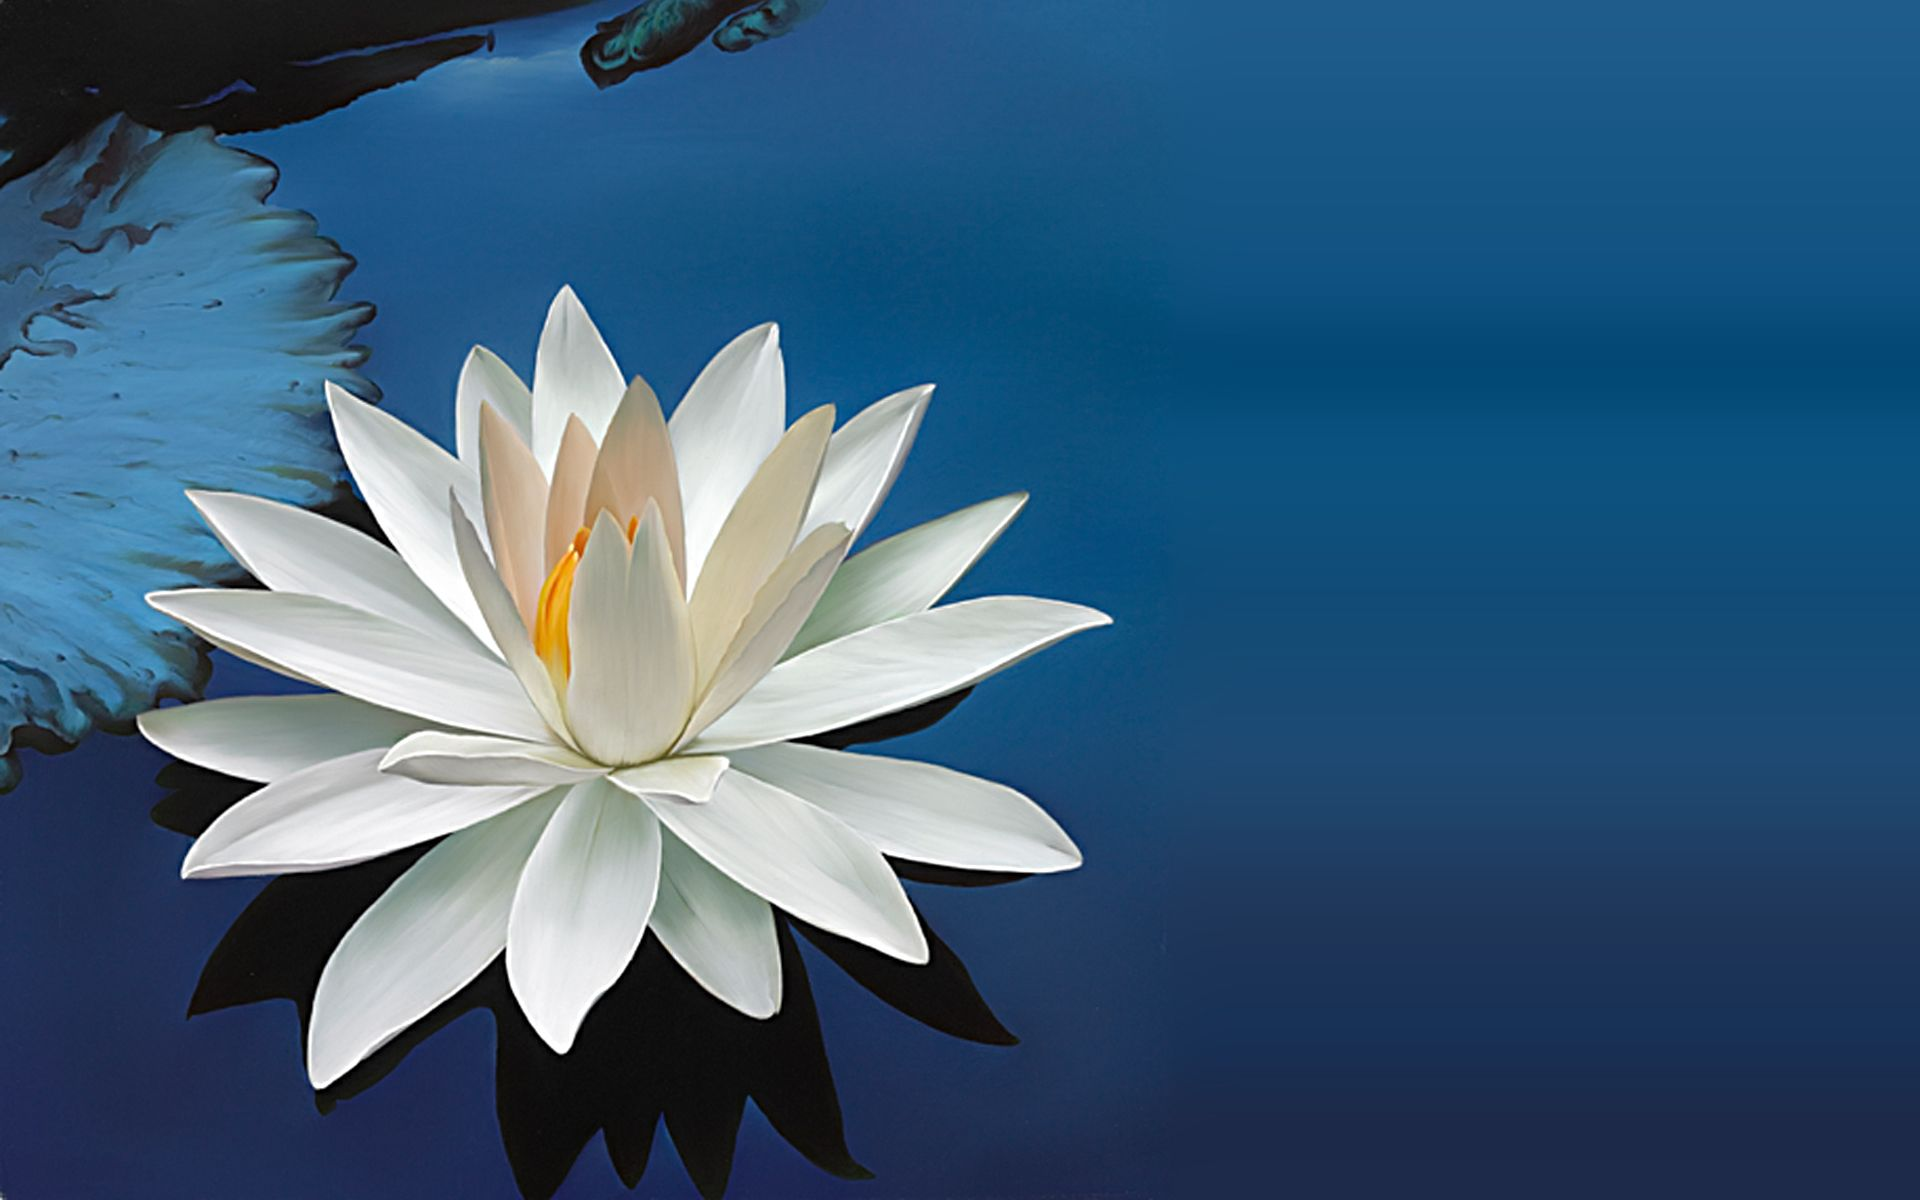 Lotus Flower Wallpaper For Iphone Free Download > SubWallpaper